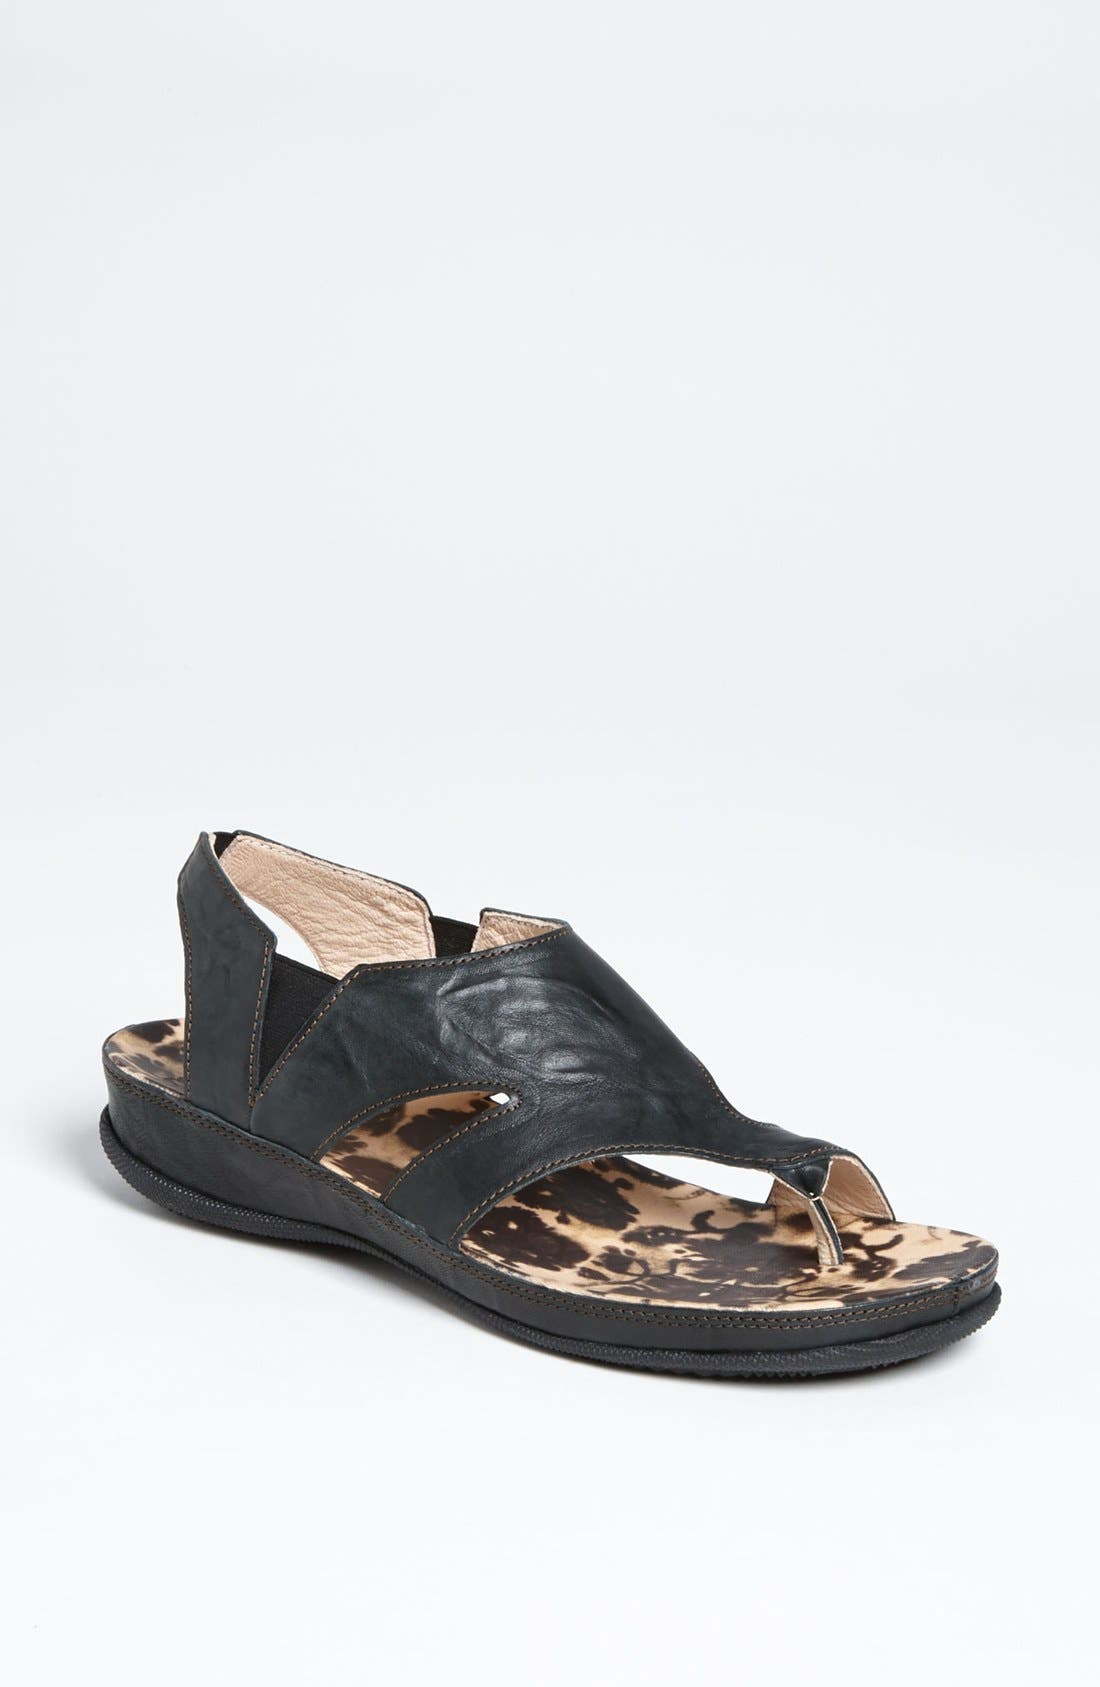 Alternate Image 1 Selected - Think! 'Zenzi' Sandal